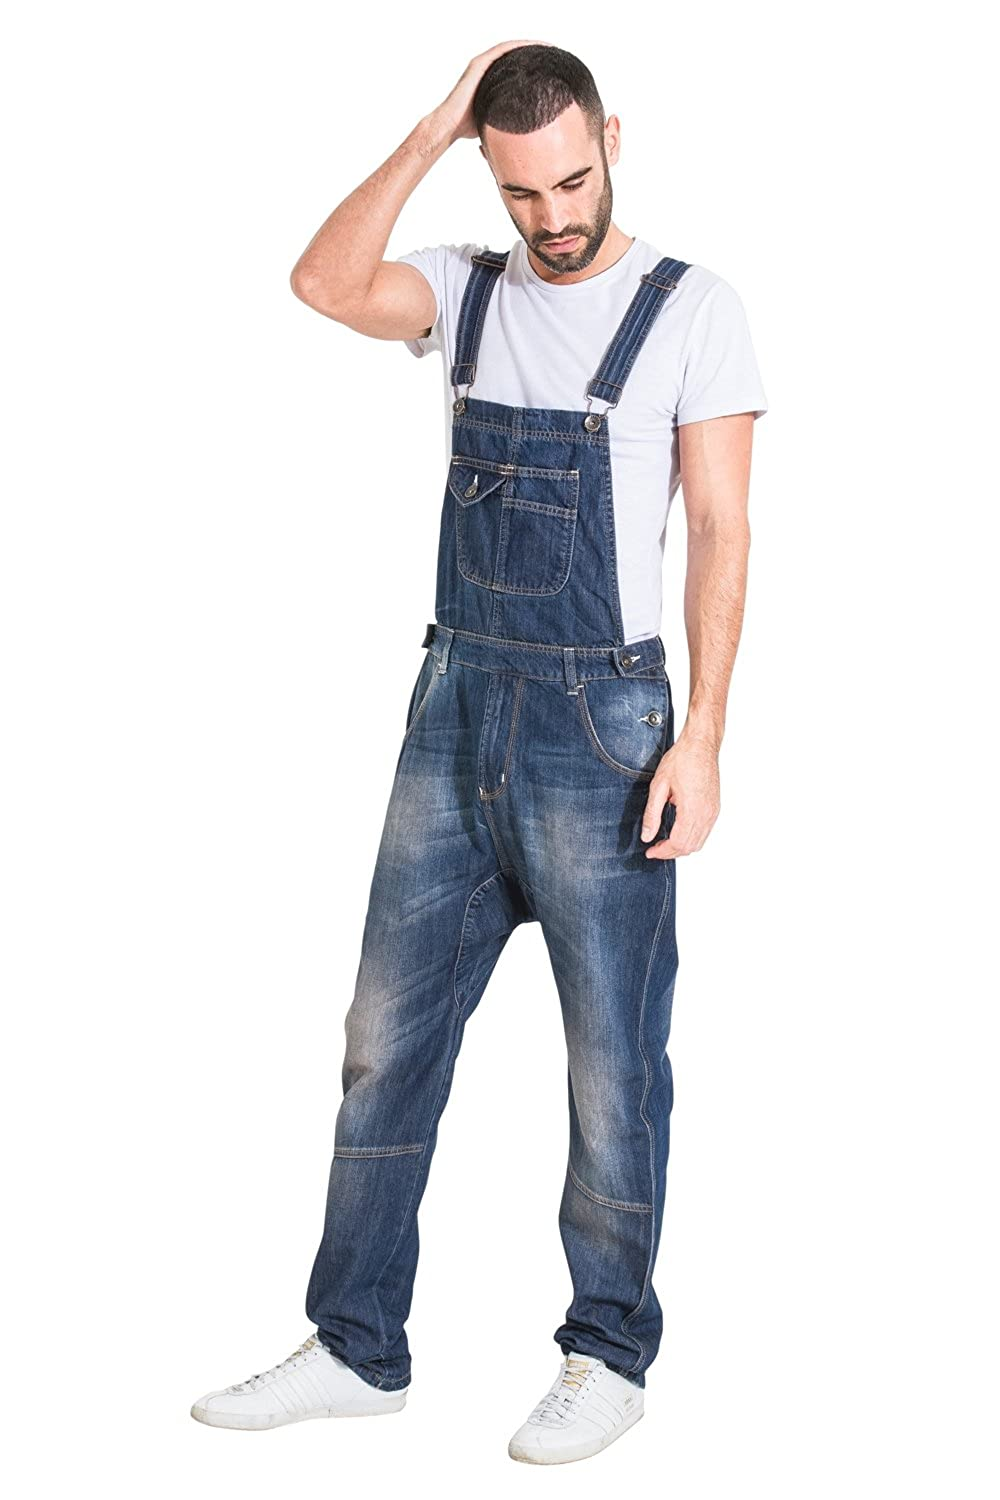 cfaa9eac4b02 Top6  USKEES Mens Relaxed Fit Garage Wash Bib Overalls Quality Denim  Dungarees. Wholesale ...